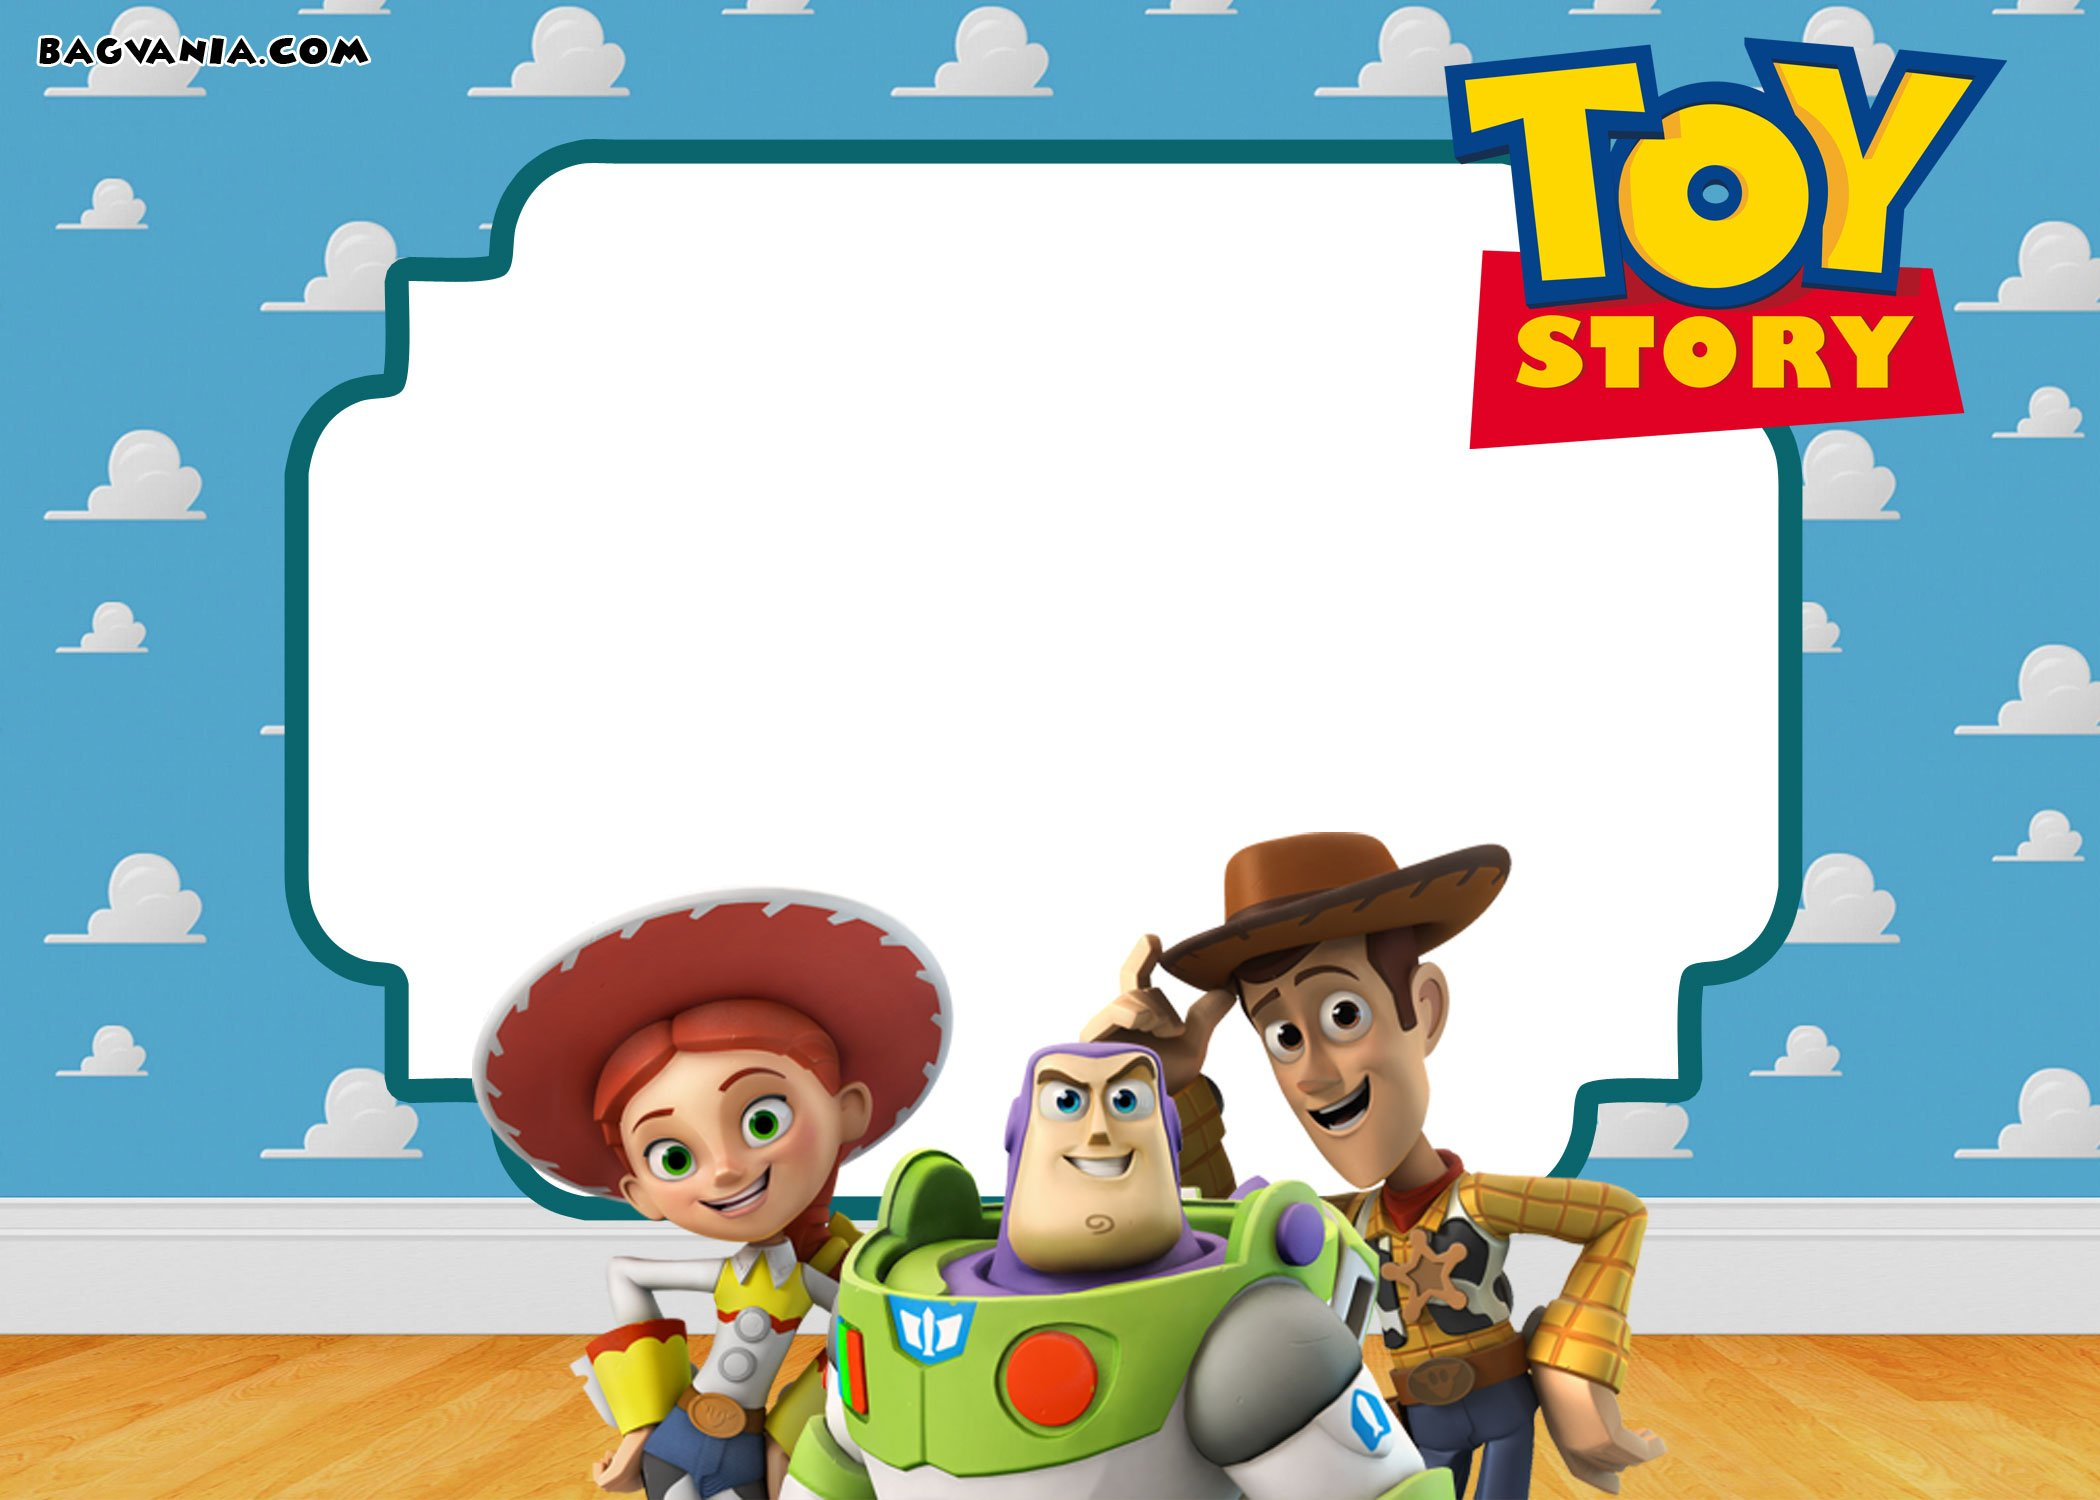 Boy Toys Template : Free printable toy story birthday invitations bagvania